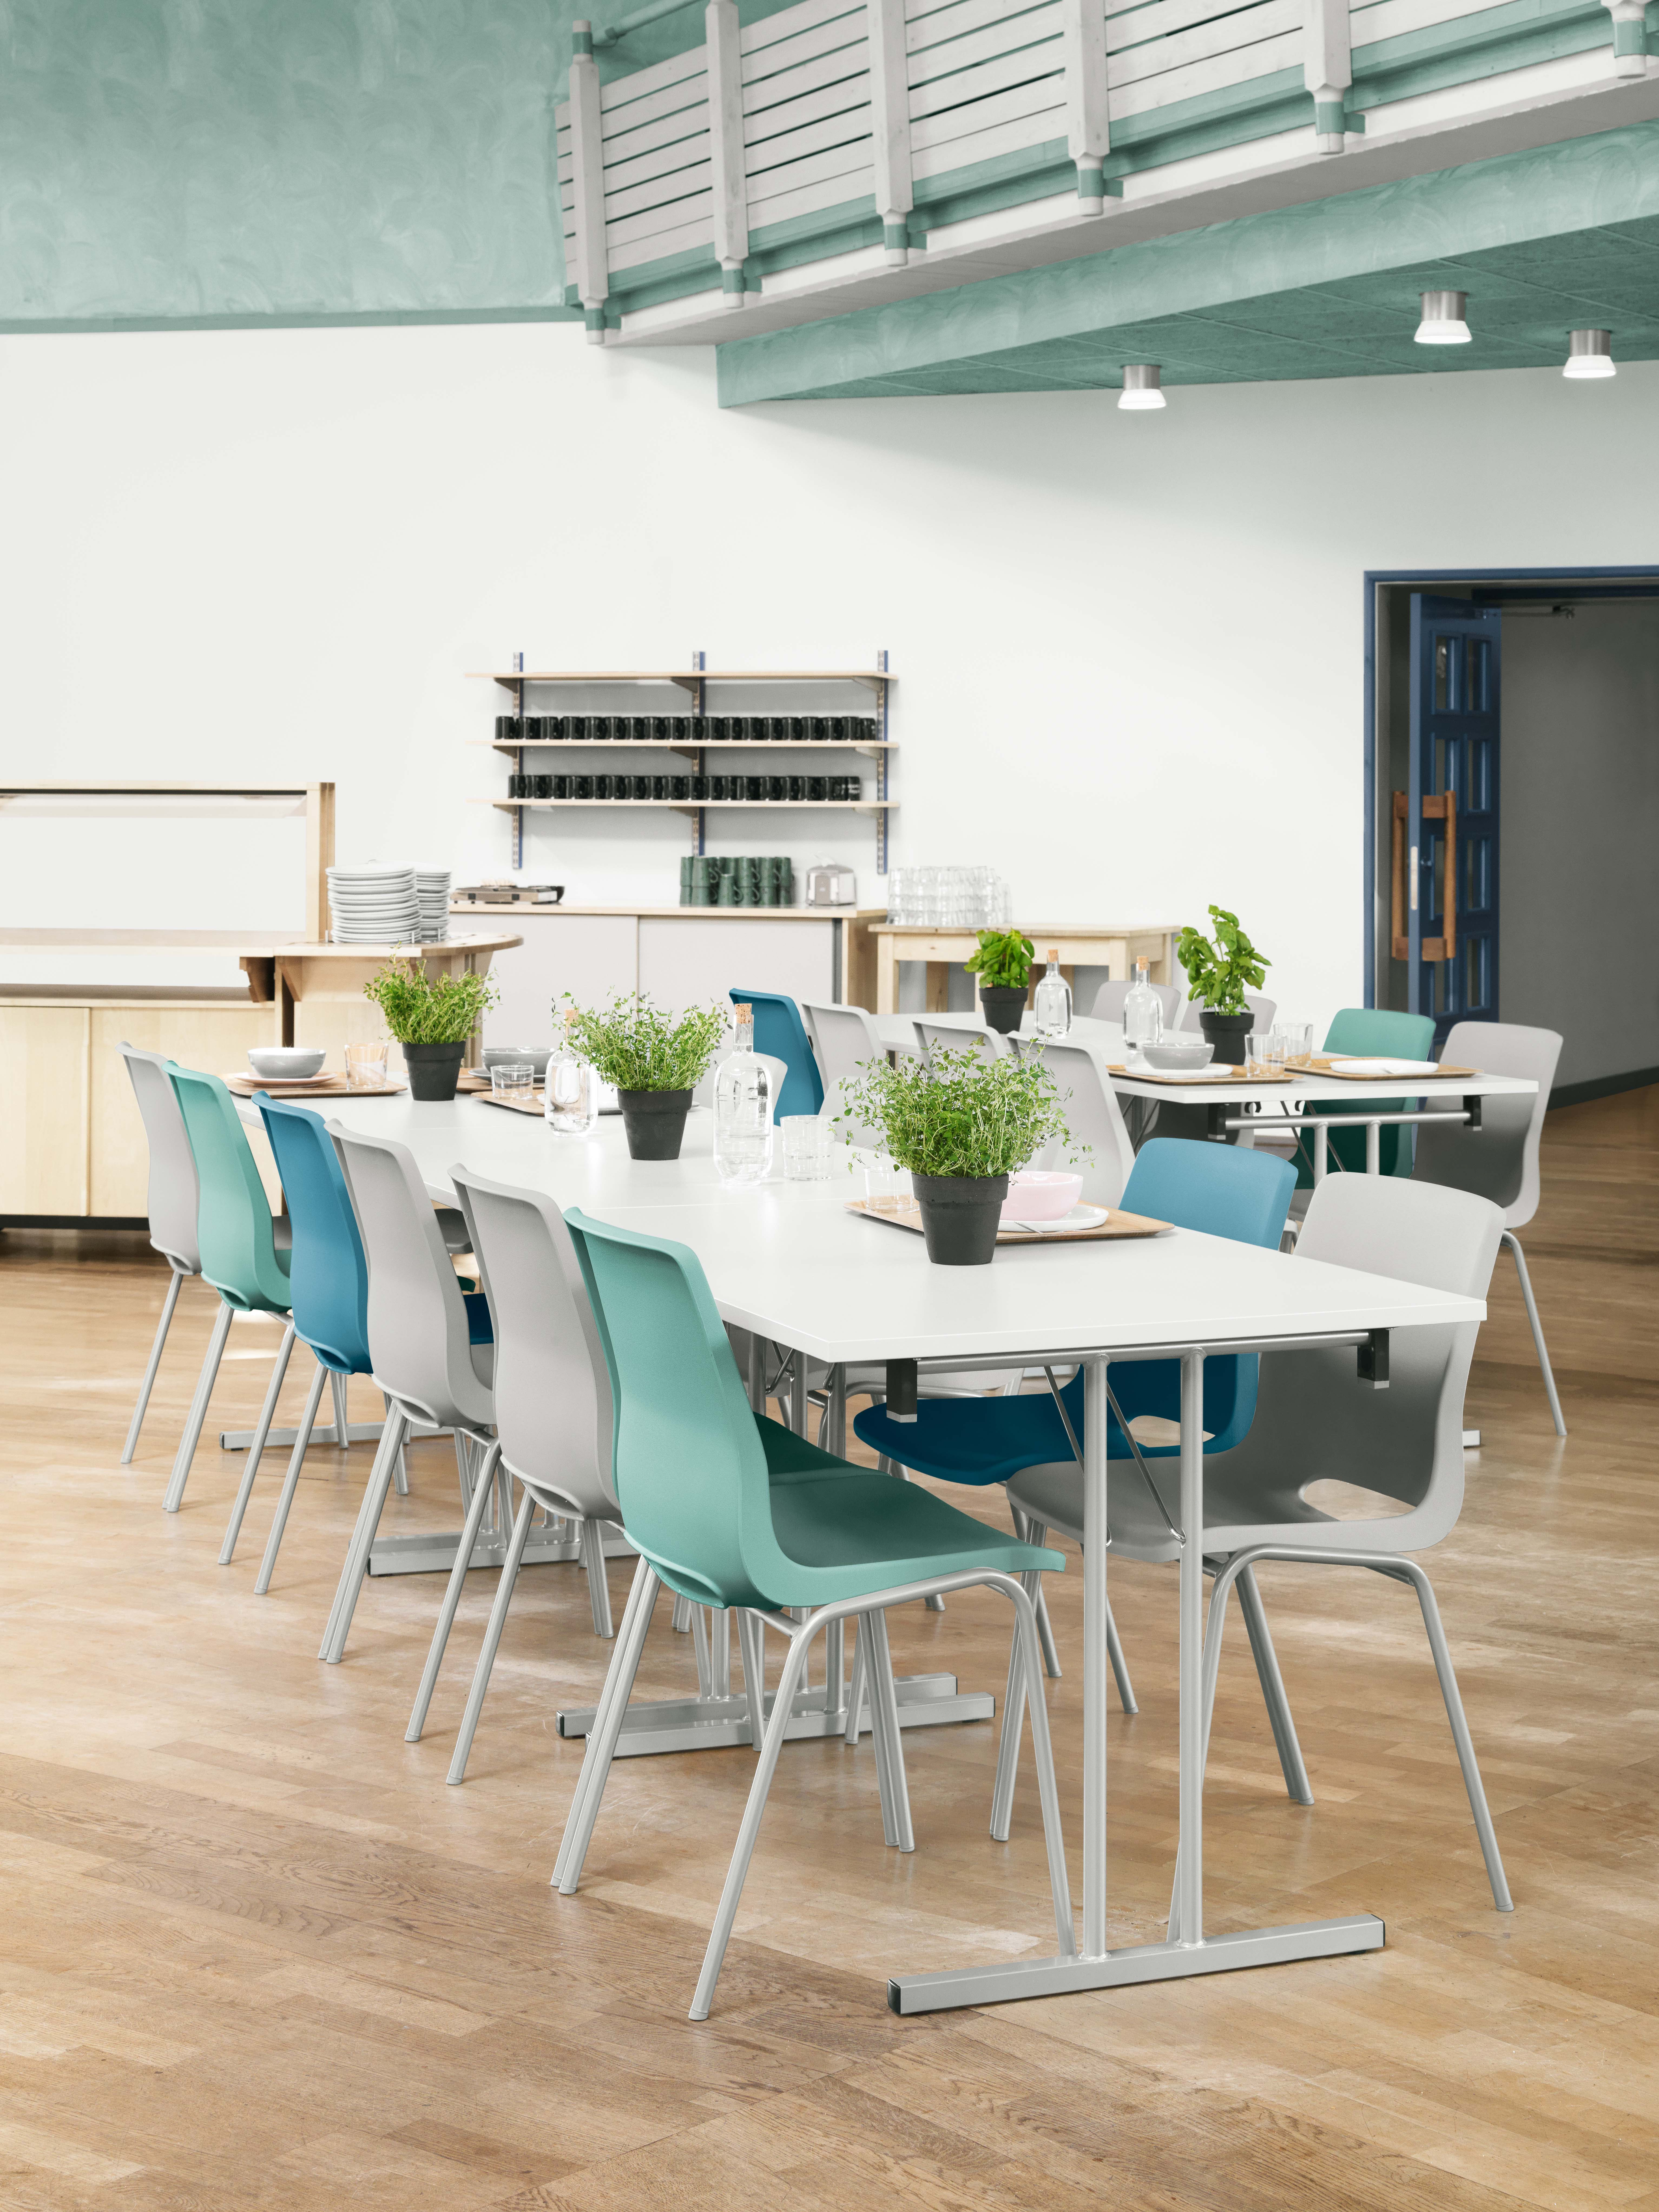 RBM Ana seating for cafes and canteens in educational spaces